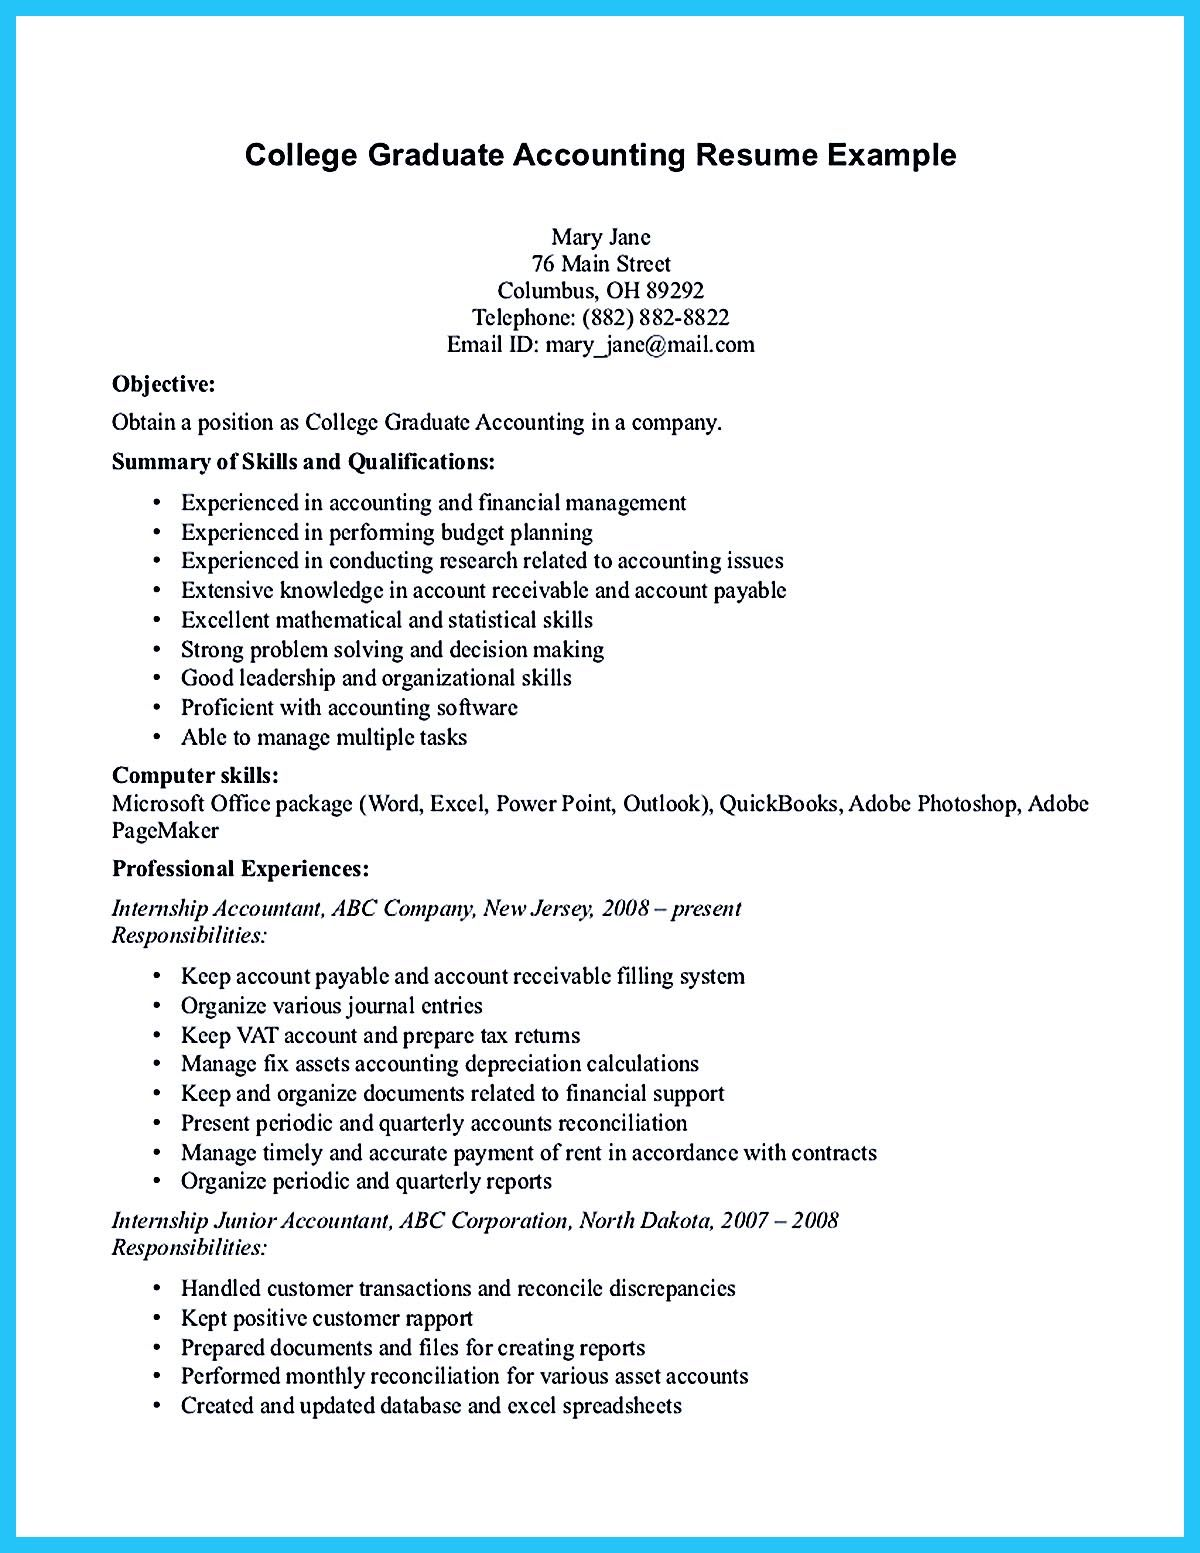 Objective For Accounts Payable Resume Accounting Student Resume Here Presents How The Resume Of